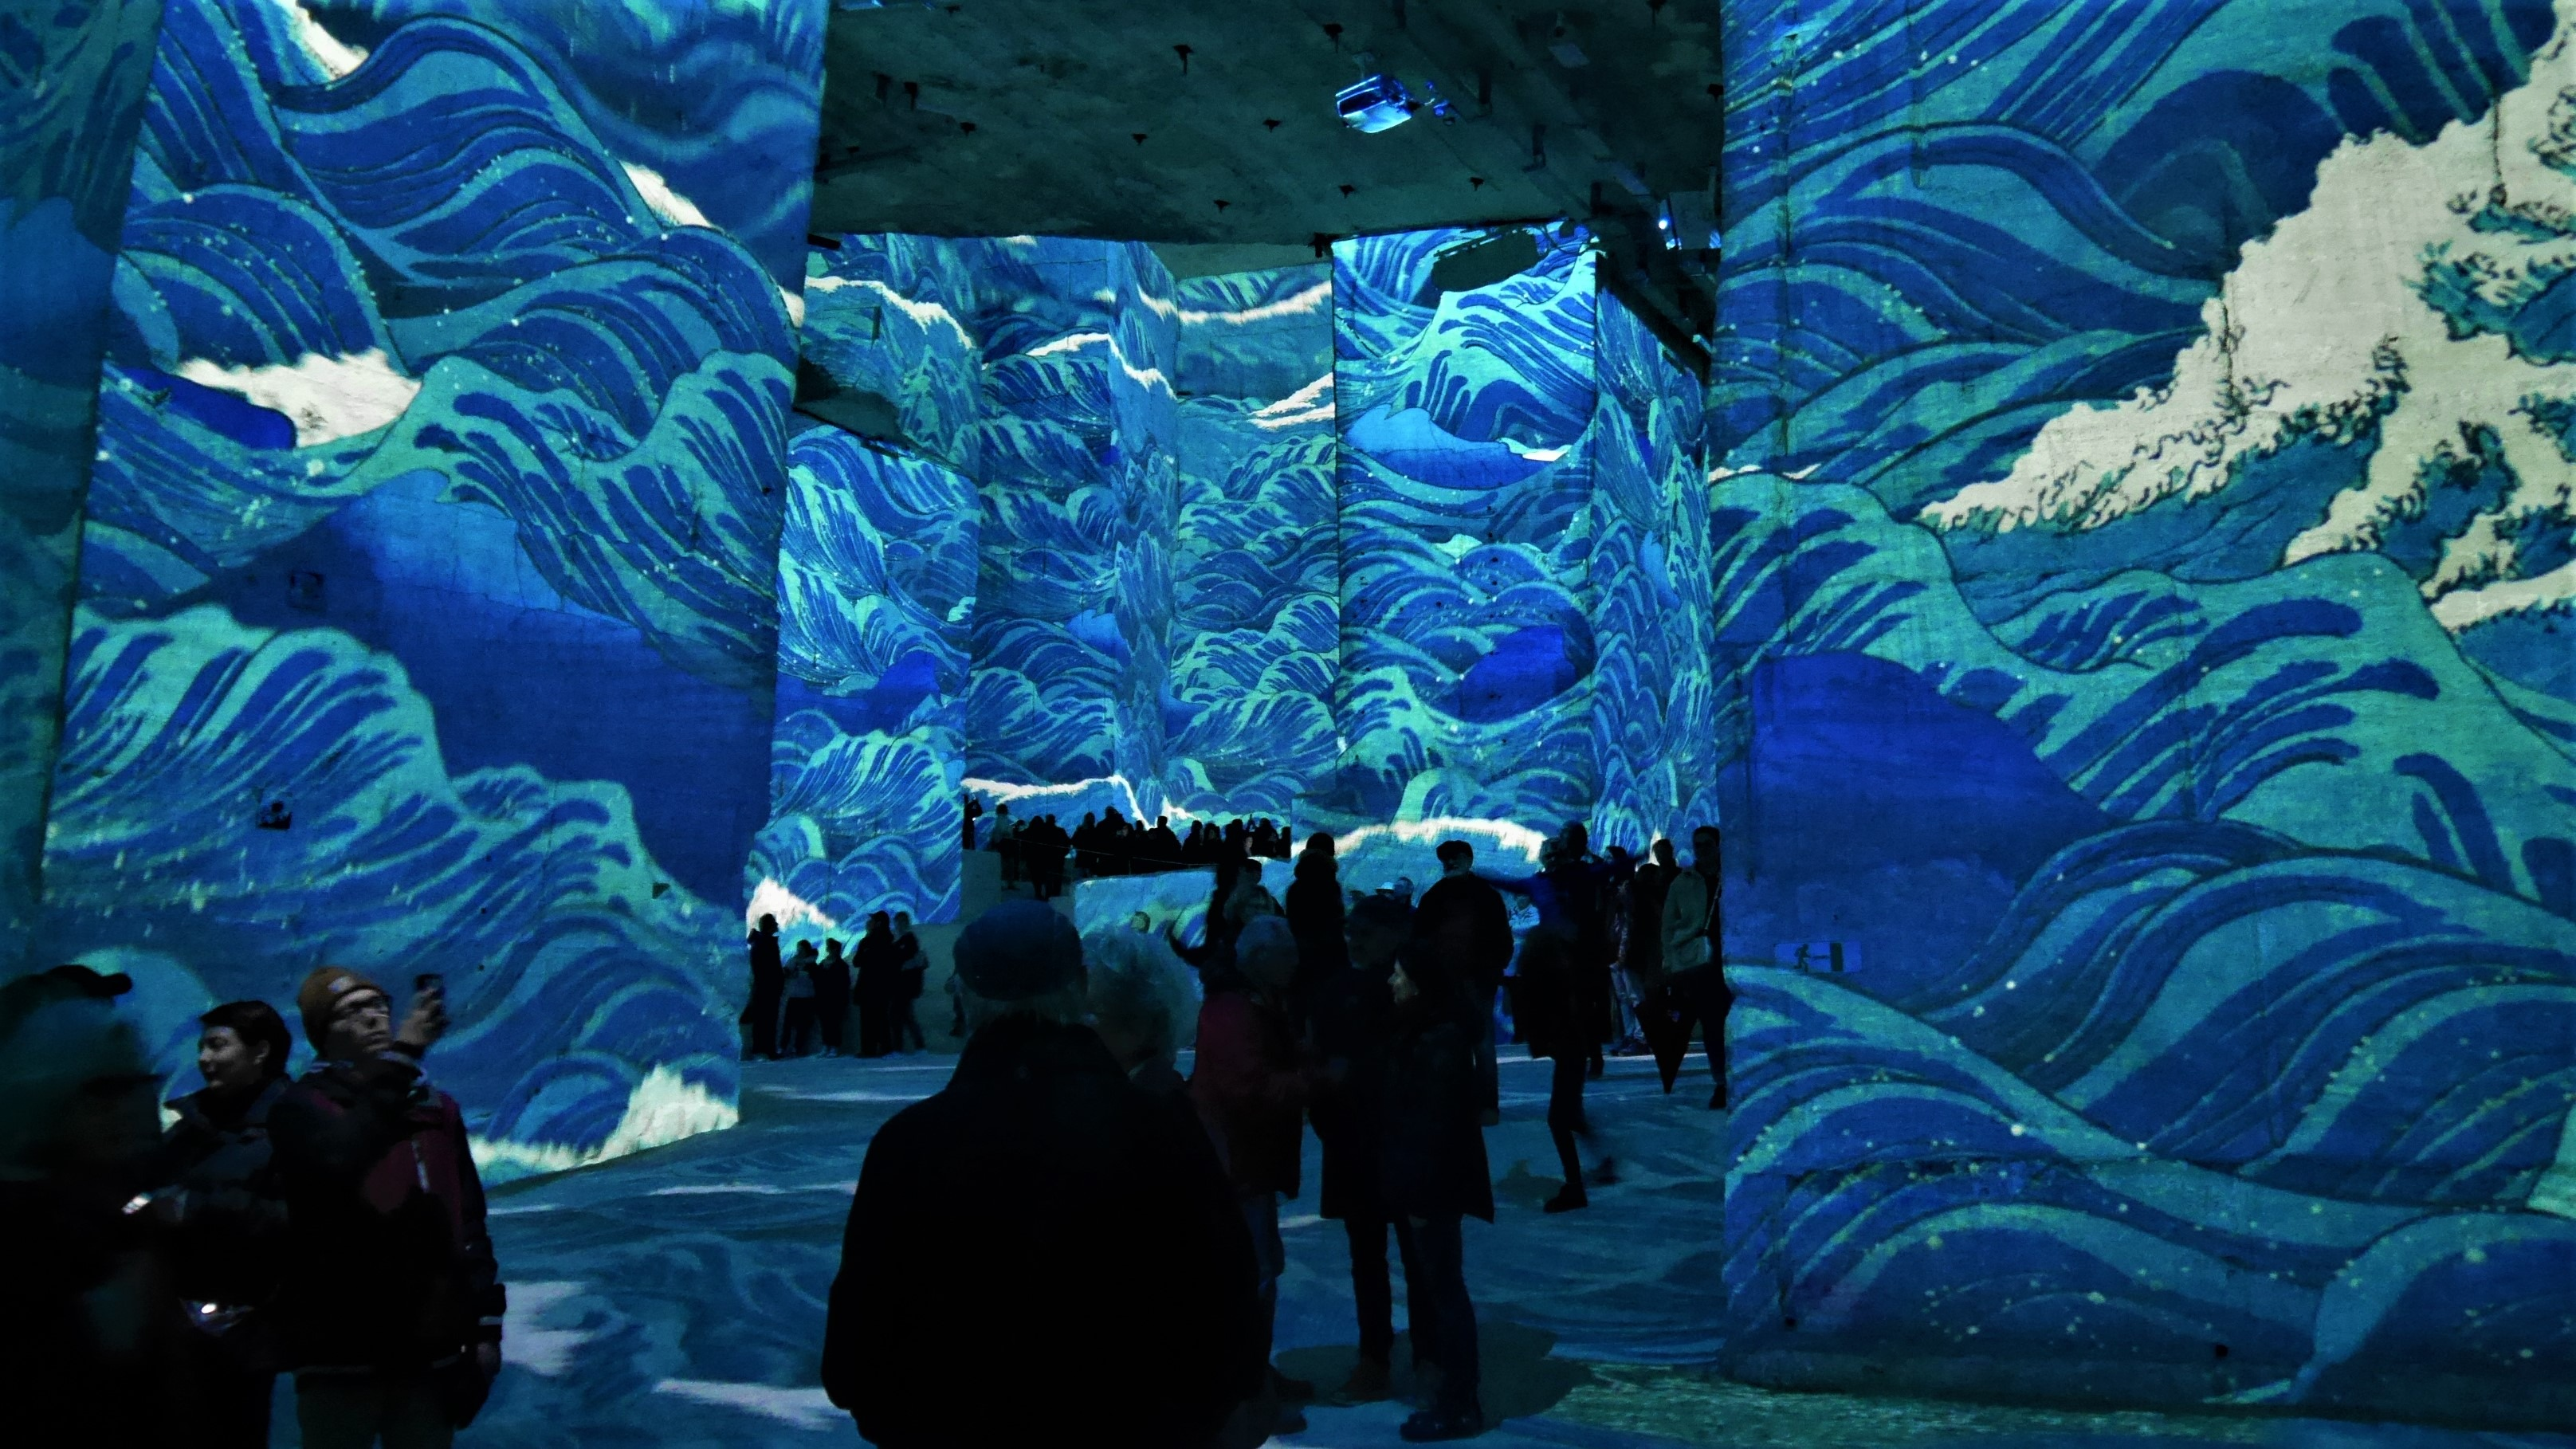 carrieres lumieres tarifs expo van gogh japon